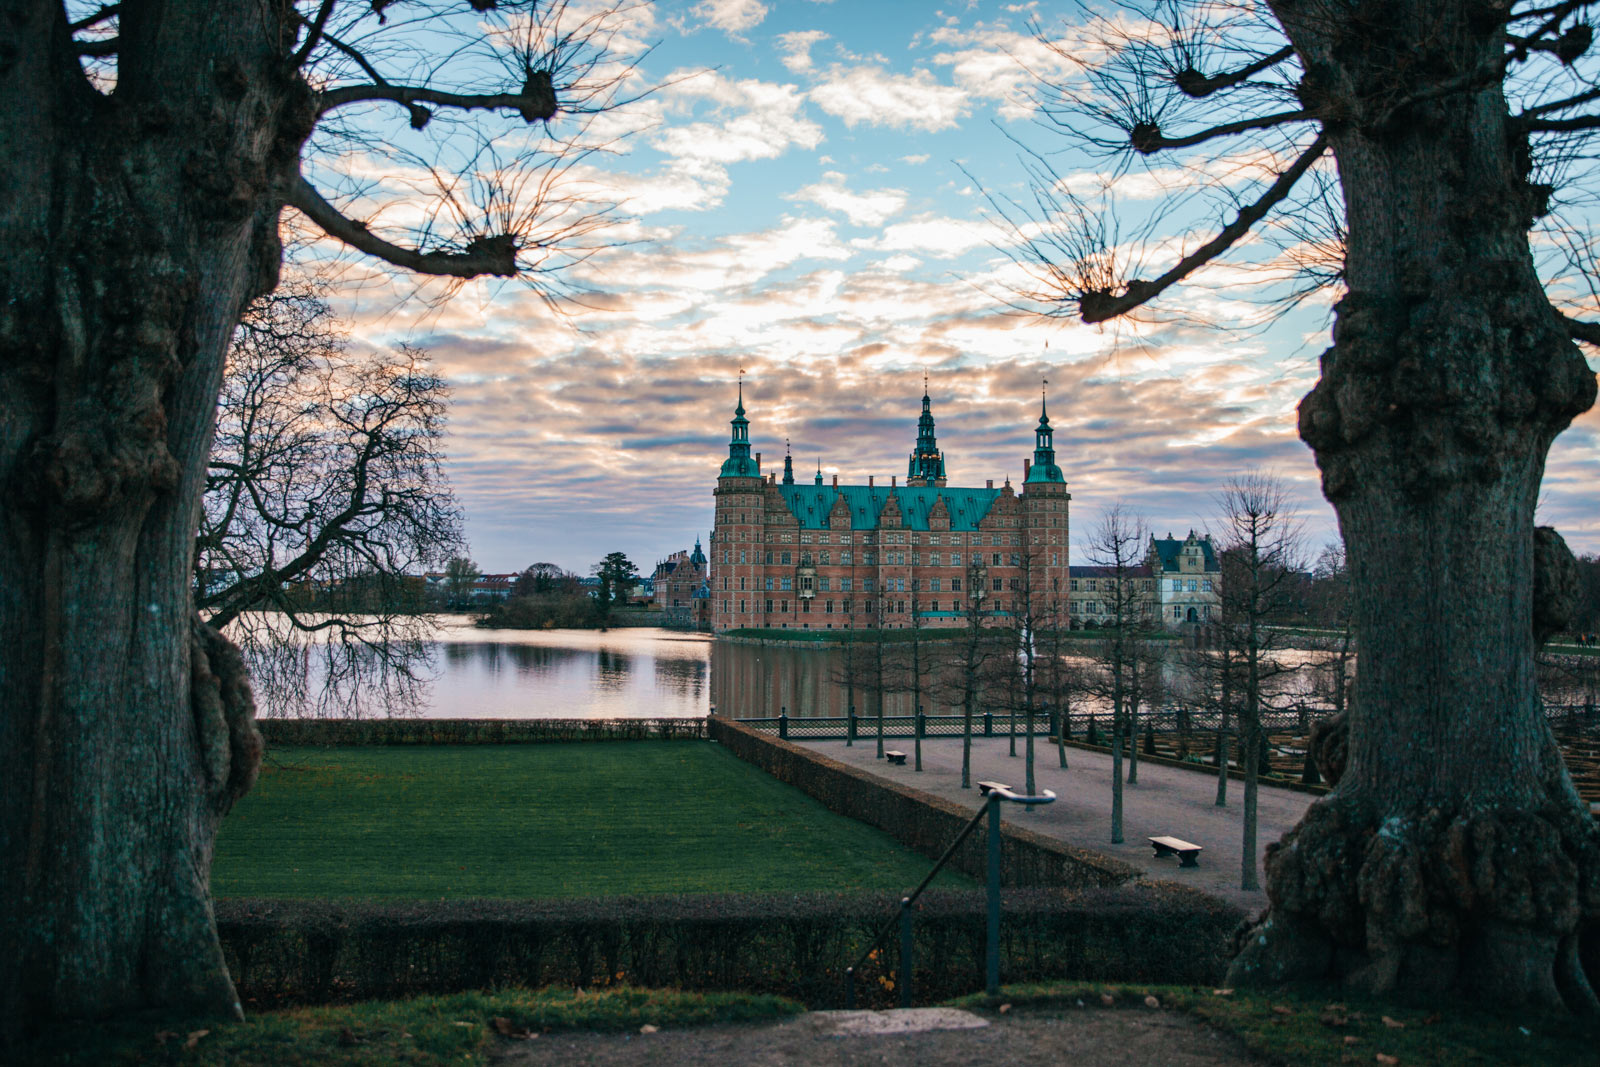 89dcf4ec8d4 5 Magical Castles in Denmark For Your Bucket List - Our Travel Soup